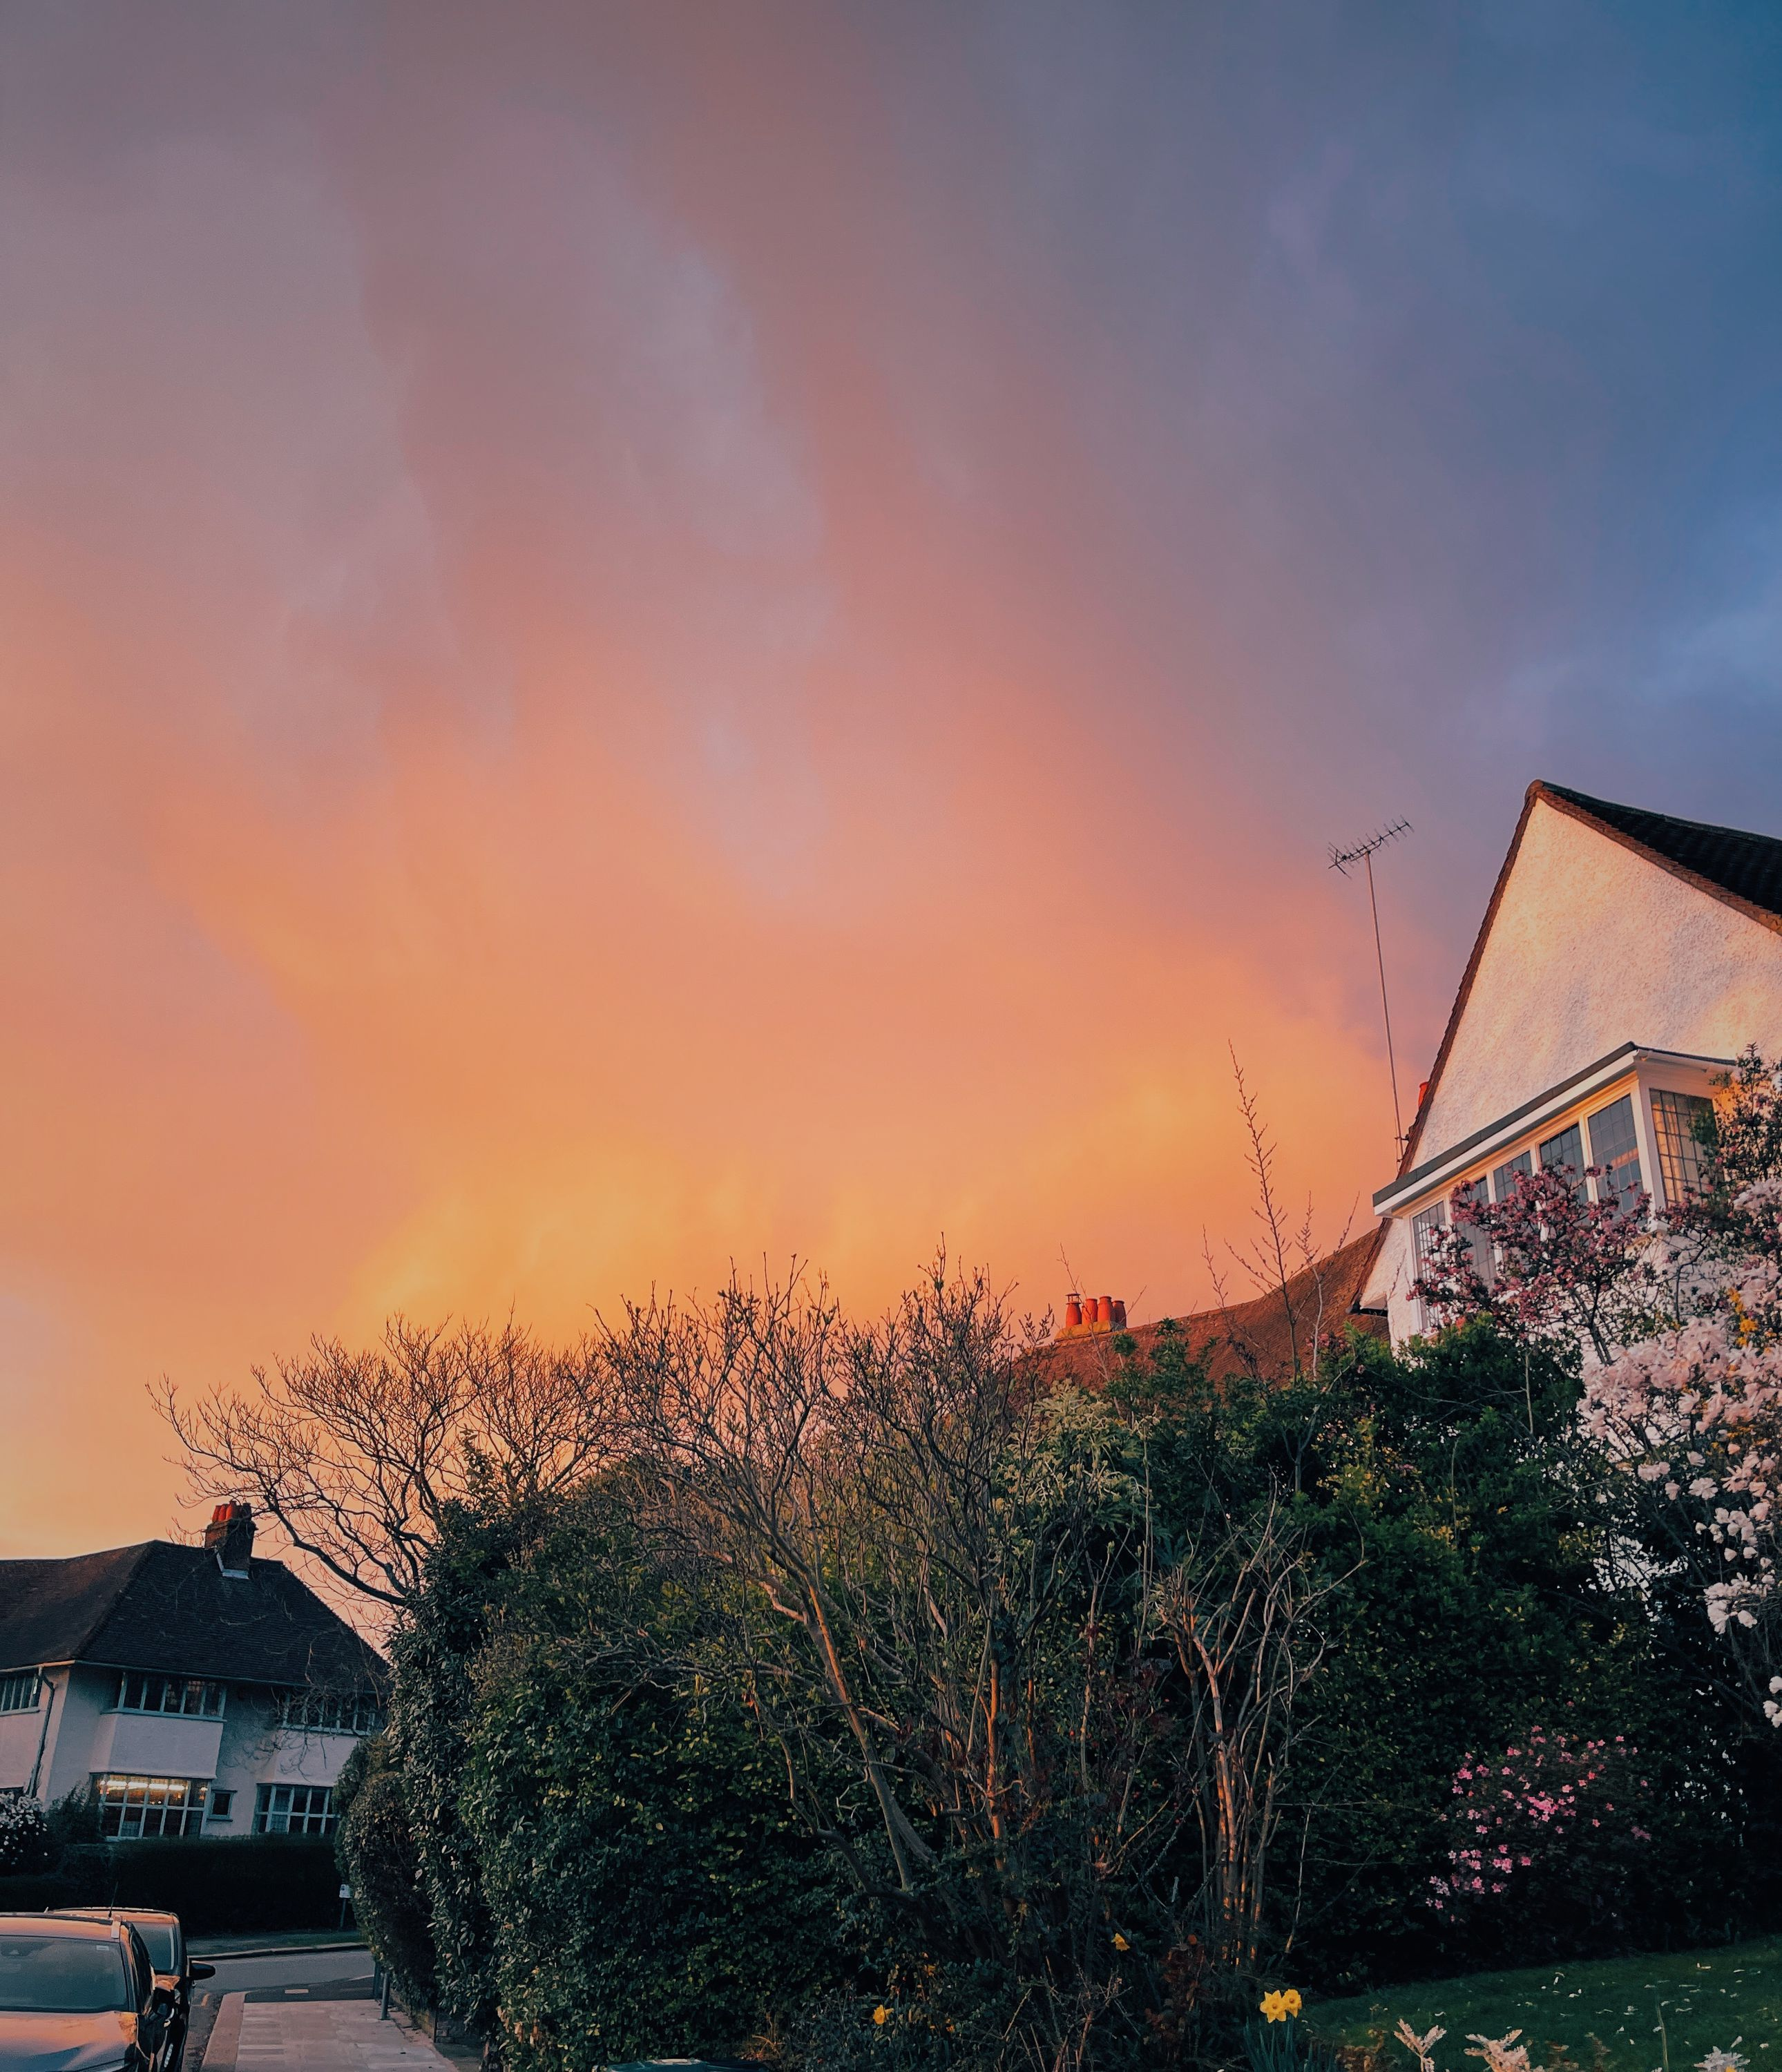 red sky at night - meadway gate